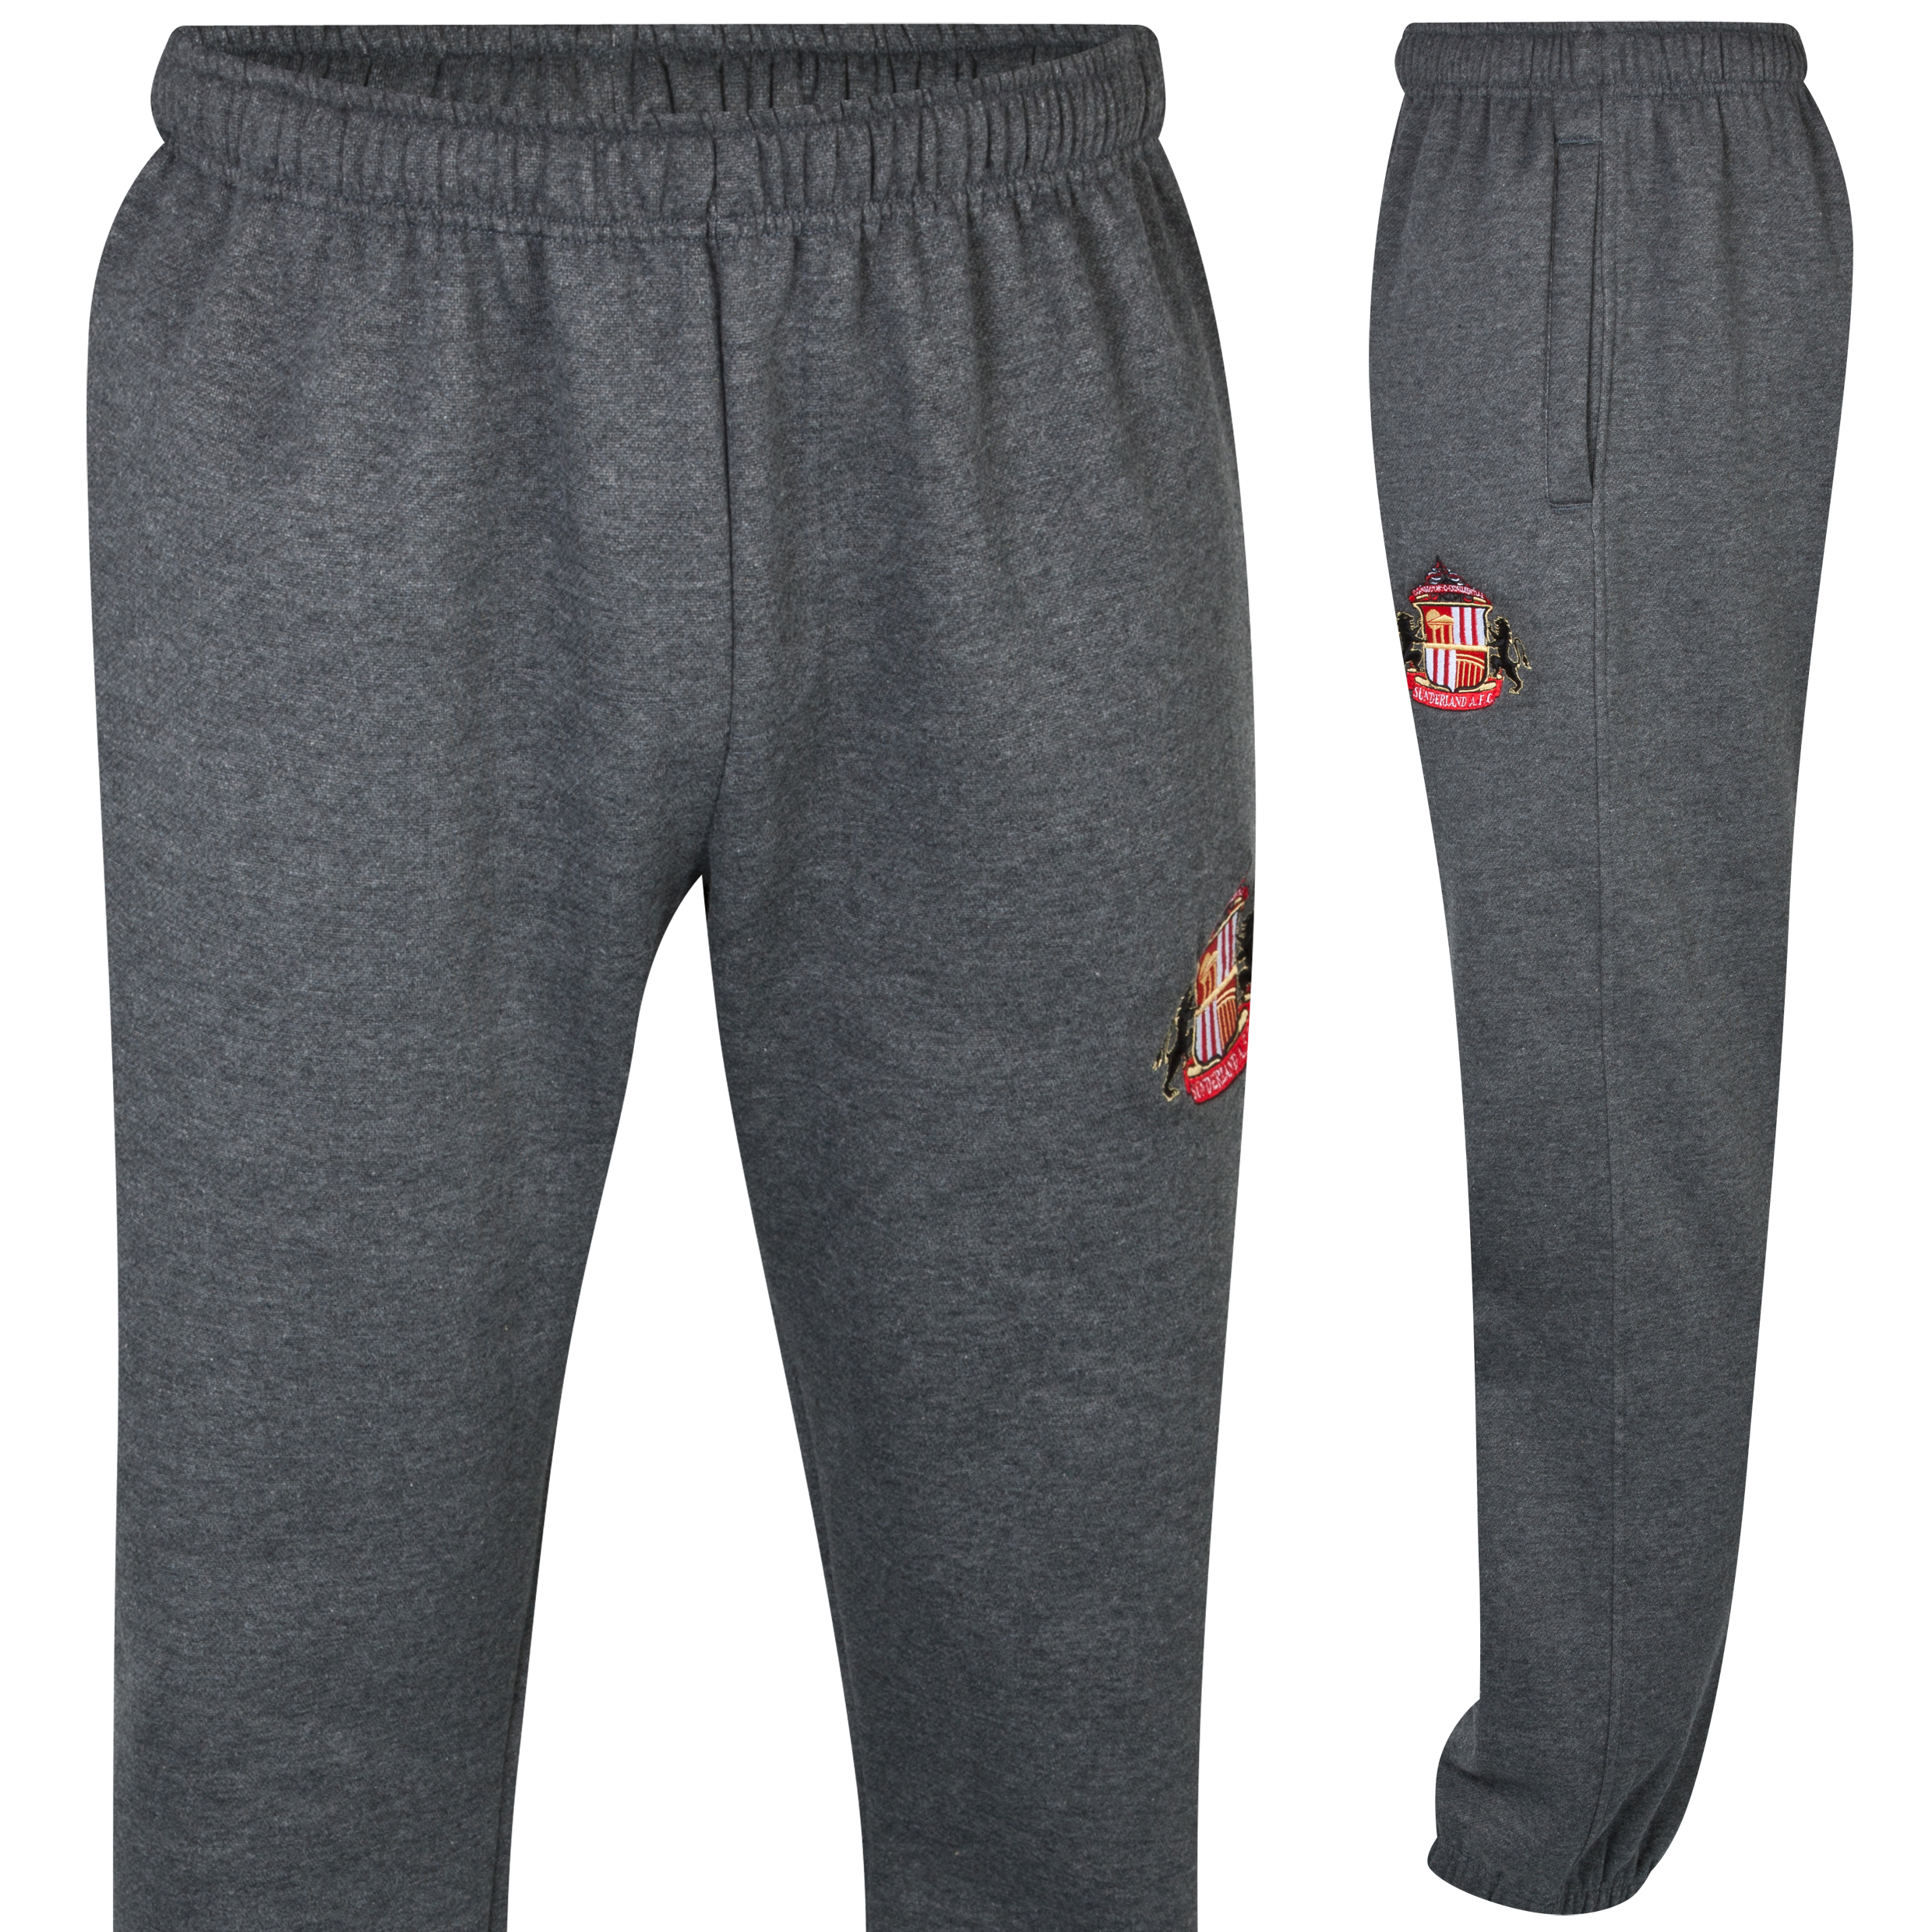 Sunderland Essentials Stride Pants - Mens Charcoal